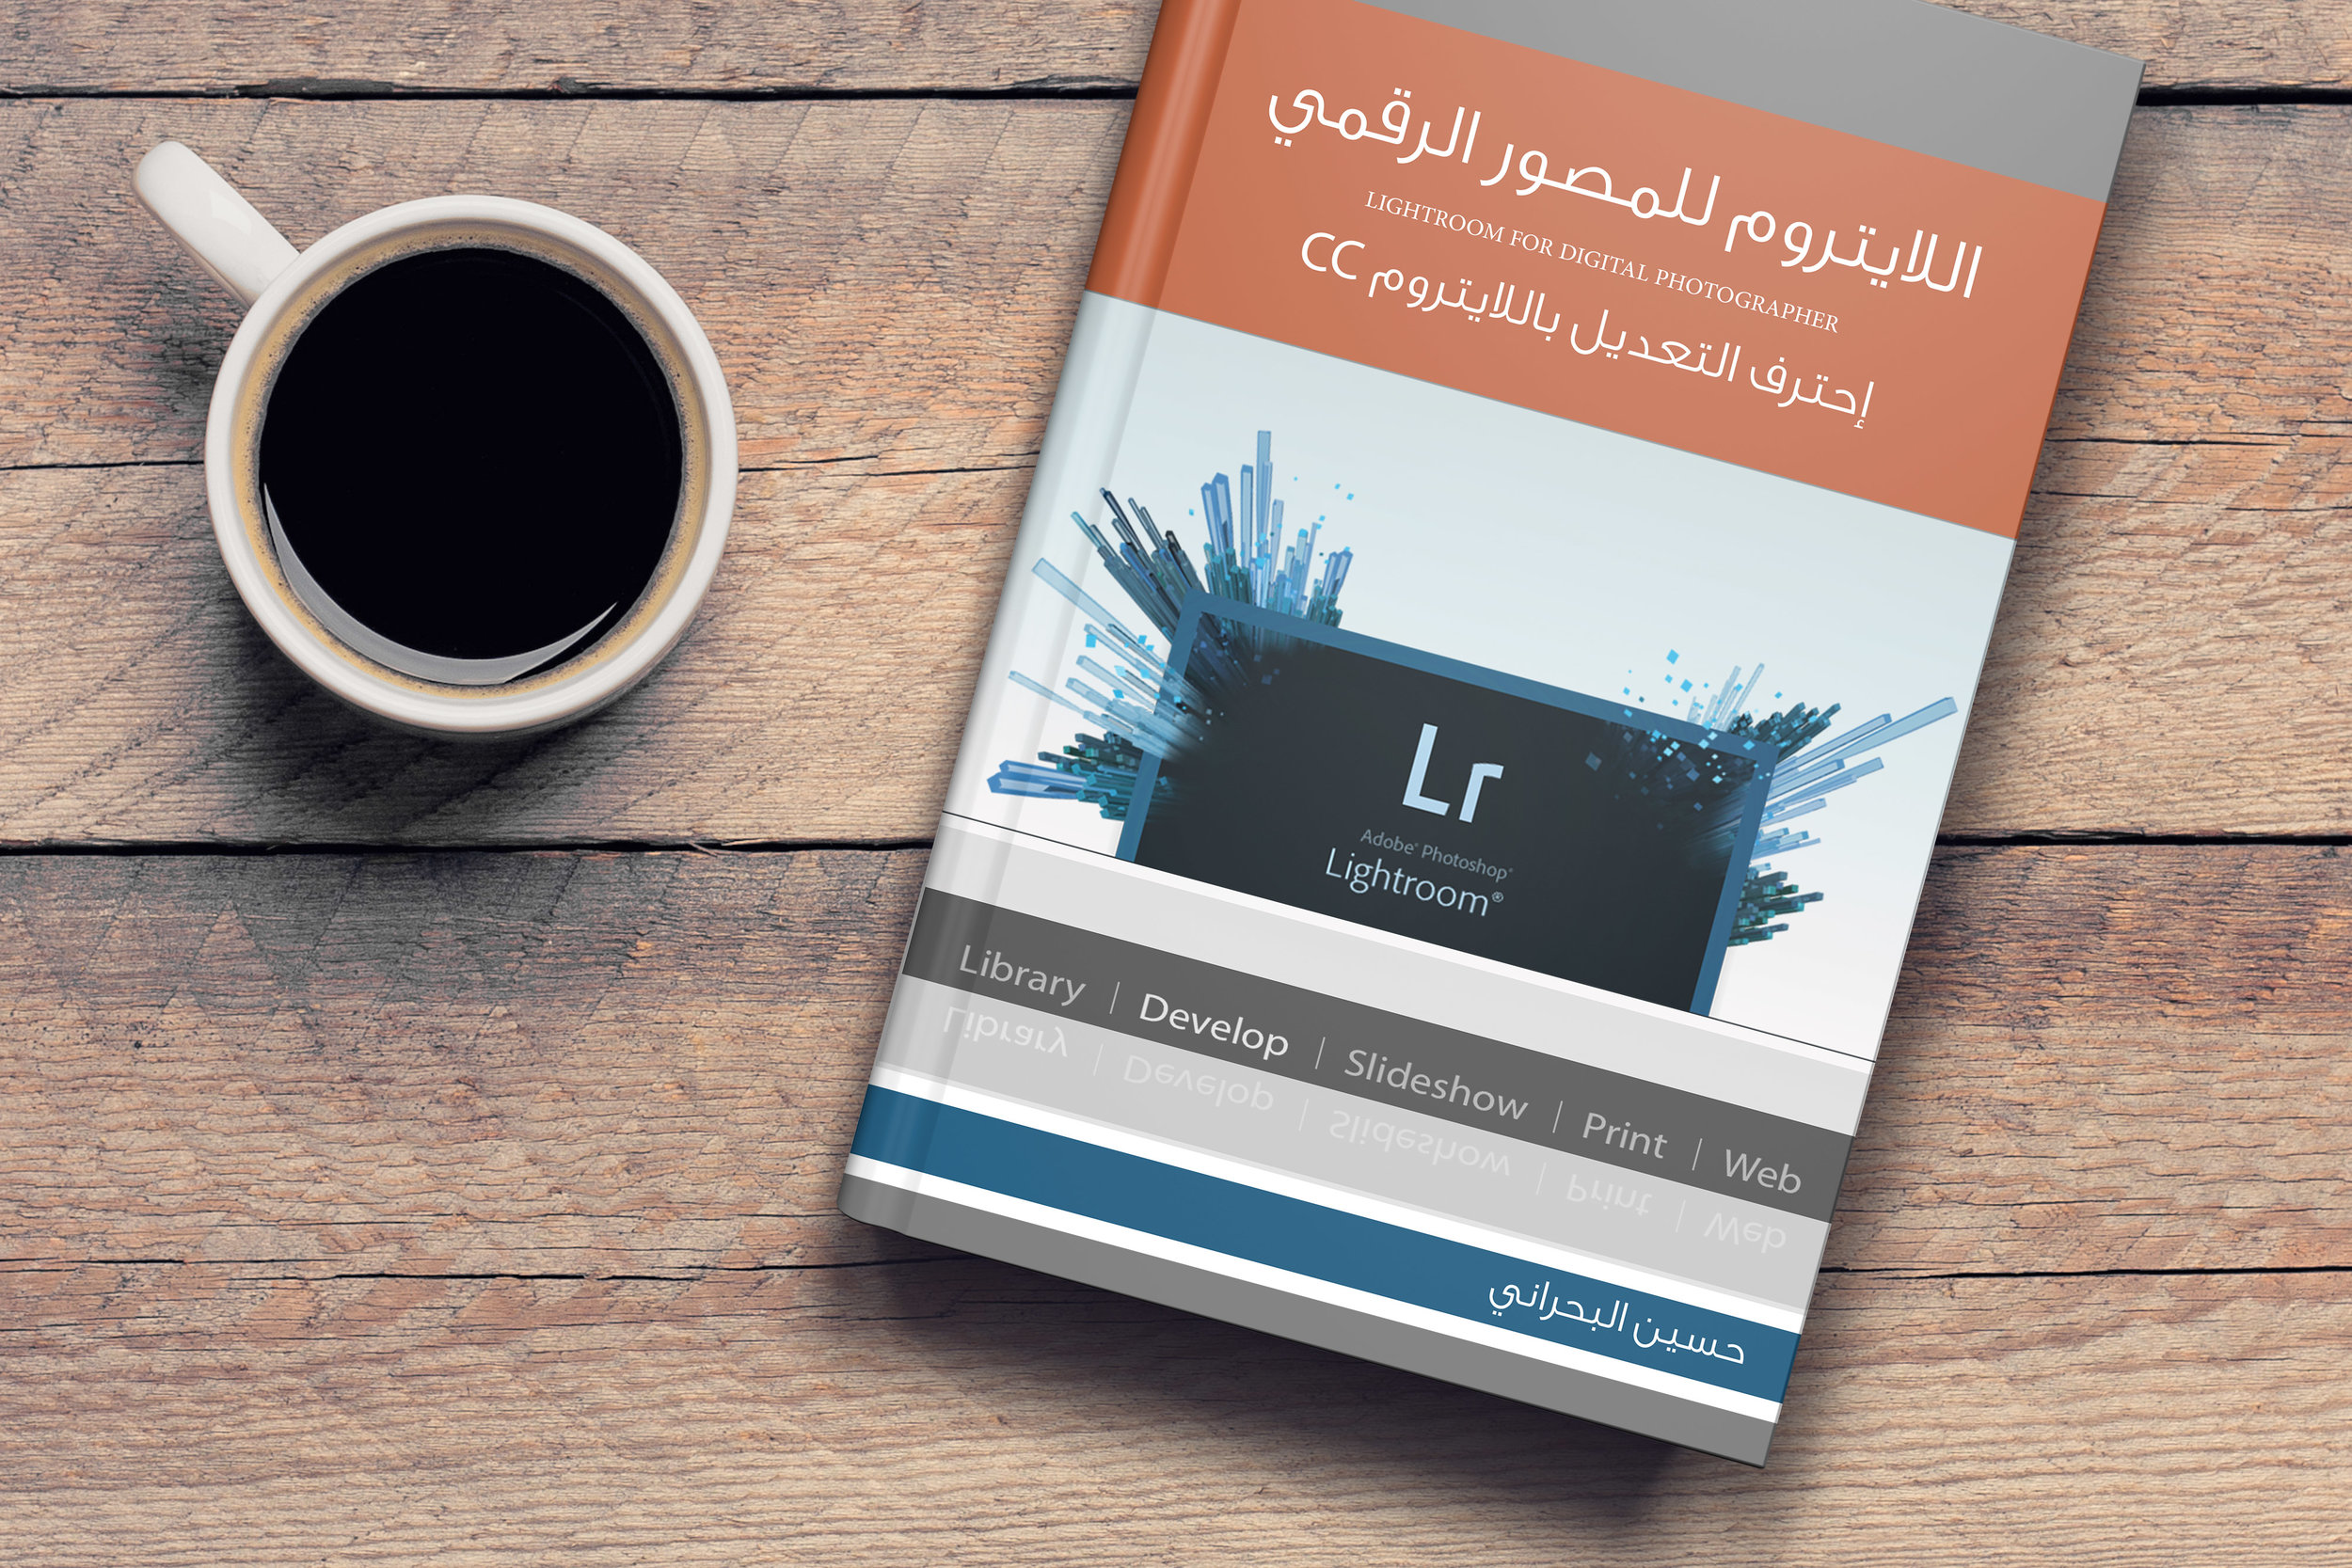 020-6x9-Table-Top-Book-Coffee-Template-Mockup-COVERVAULT.jpg